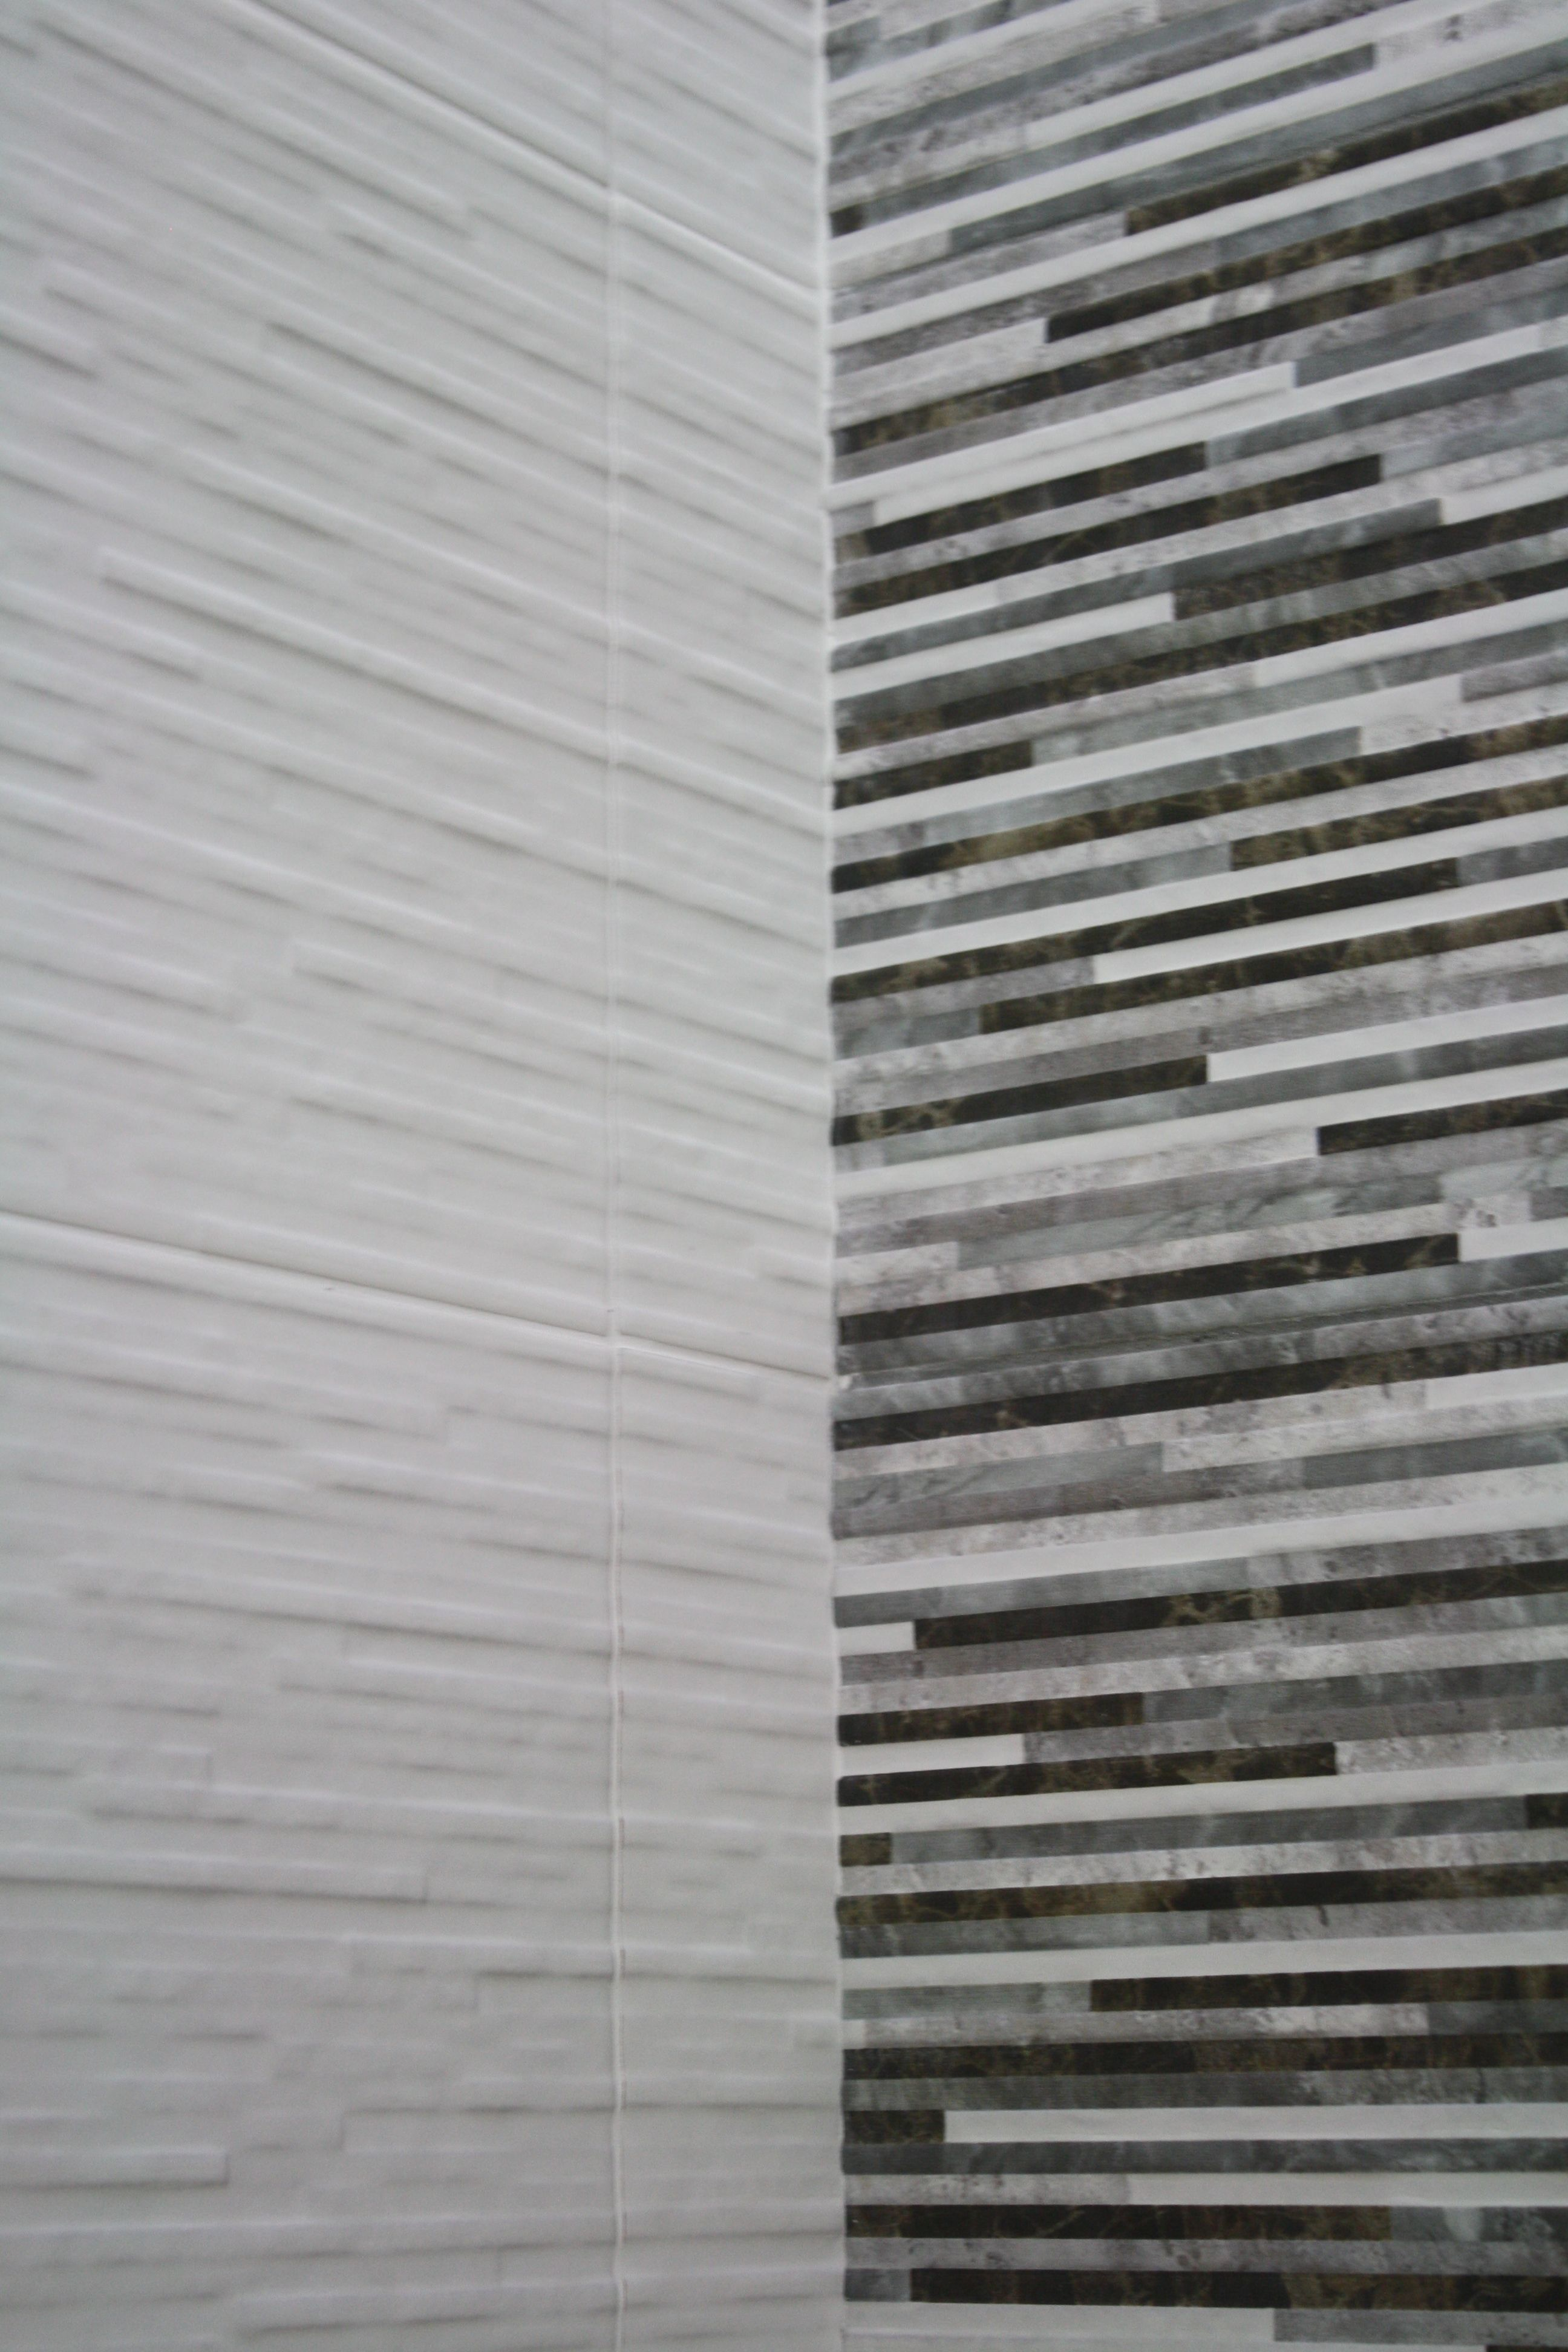 Discount Tile Depot display in York. Discount tile, Wall